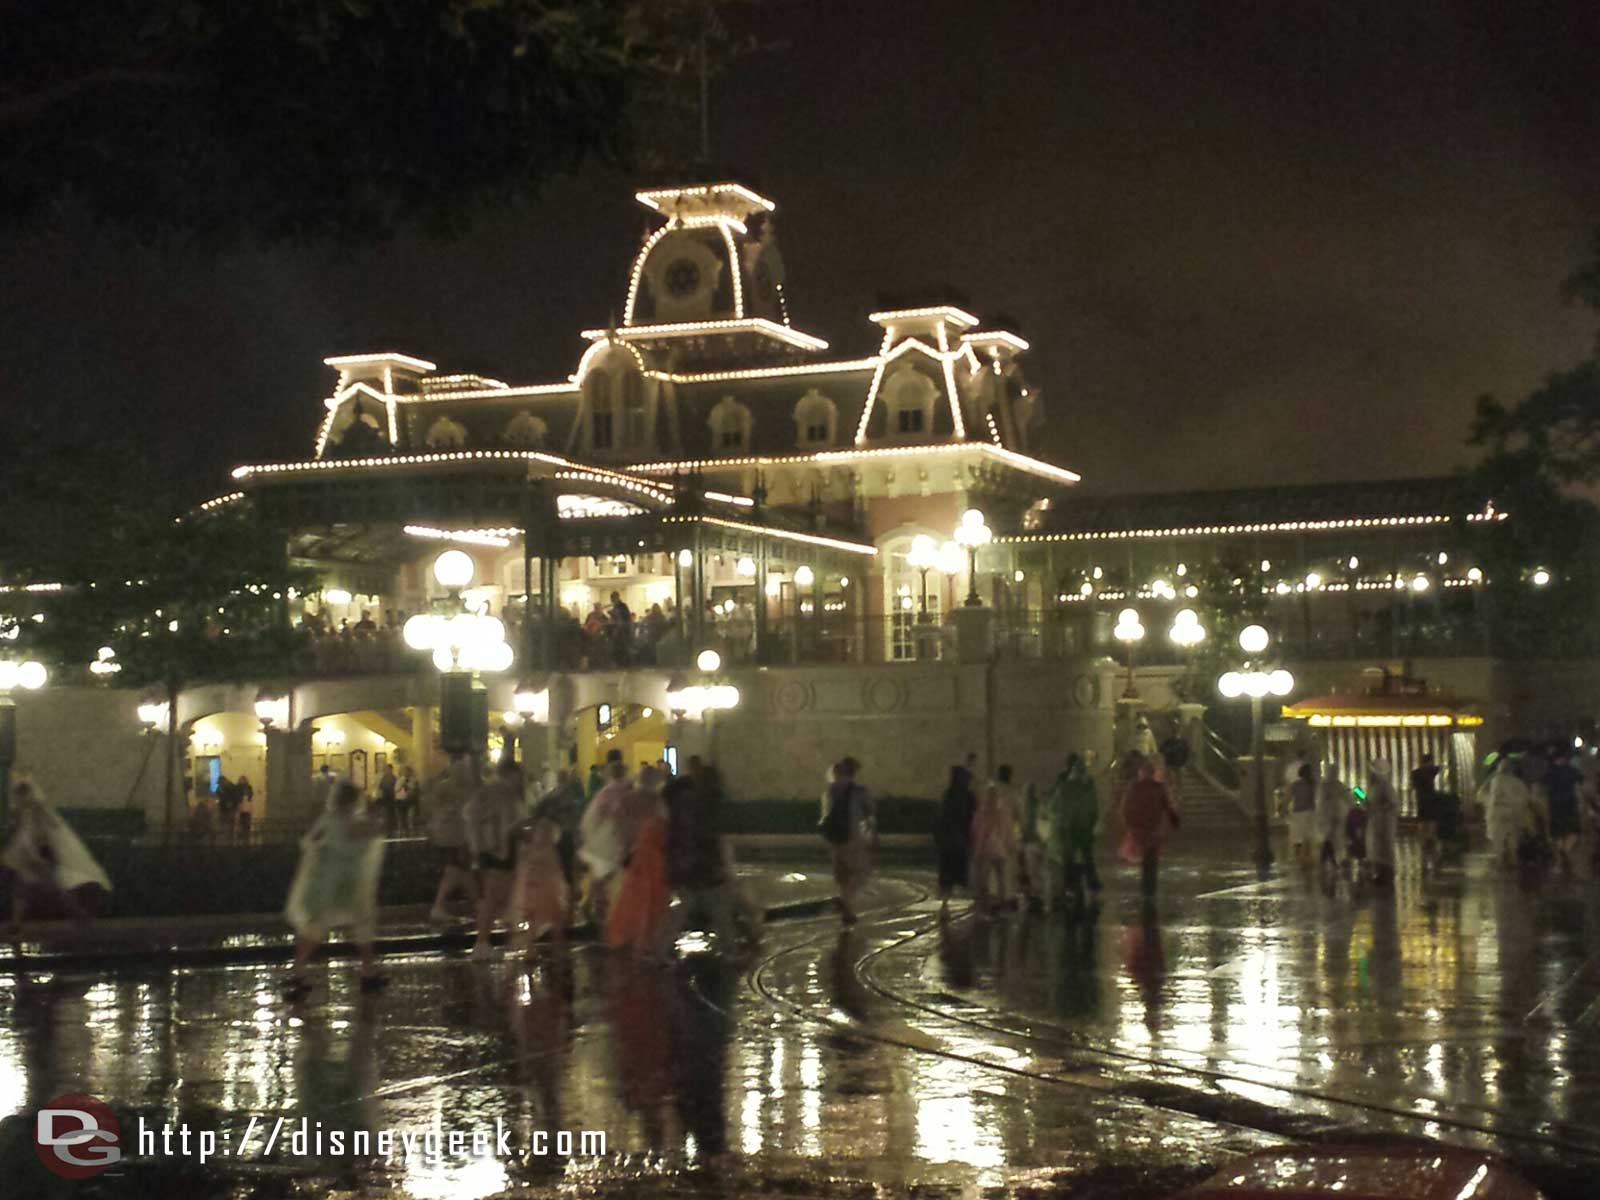 Raining fairly steady in Town Square.. will it let up for Celebrate the Magic in 10 min